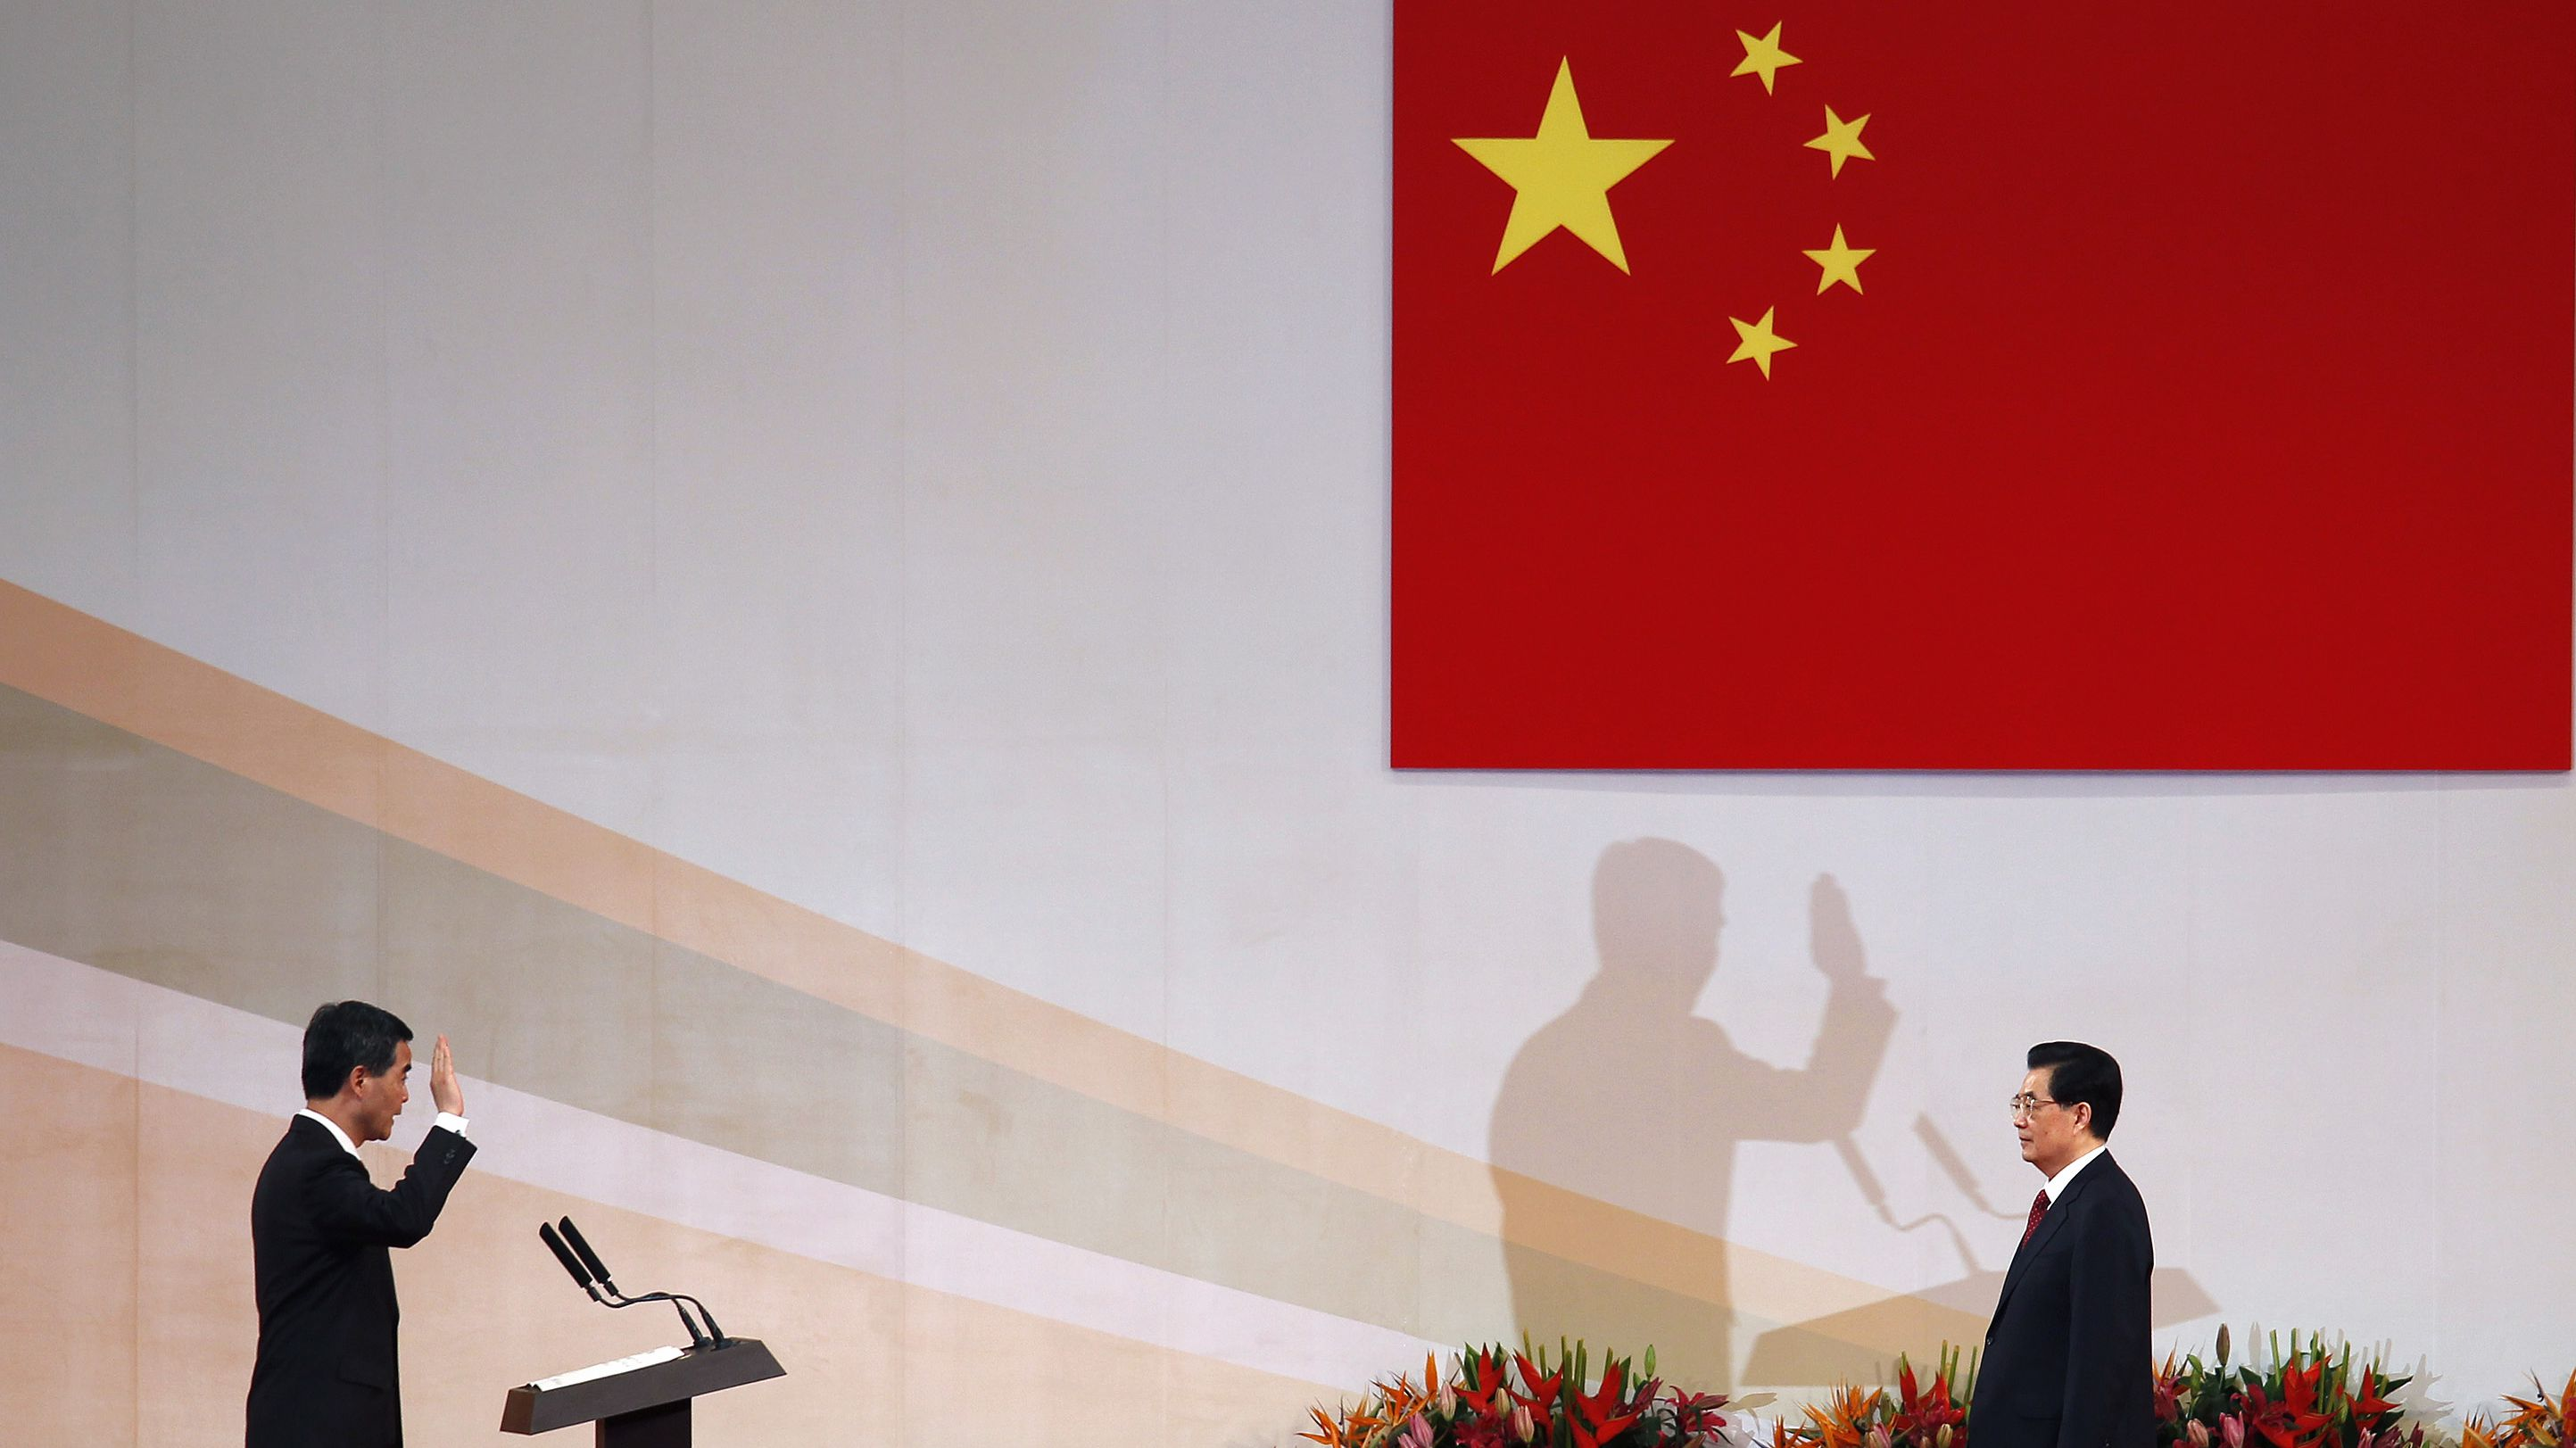 Hong Kong Chief Executive Leung Chun-ying (L) takes oath in front of Chinese President Hu Jintao during the inauguration of the new government in Hong Kong July 1, 2012, the day marking the 15th anniversary of the territory's handover to Chinese sovereignty from British rule. New Hong Kong leader Leung was sworn into office on Sunday by Chinese President Hu for a five-year term in which he will confront challenges ranging from human rights to democracy after a tumultuous year of transition and protest. REUTERS/Bobby Yip